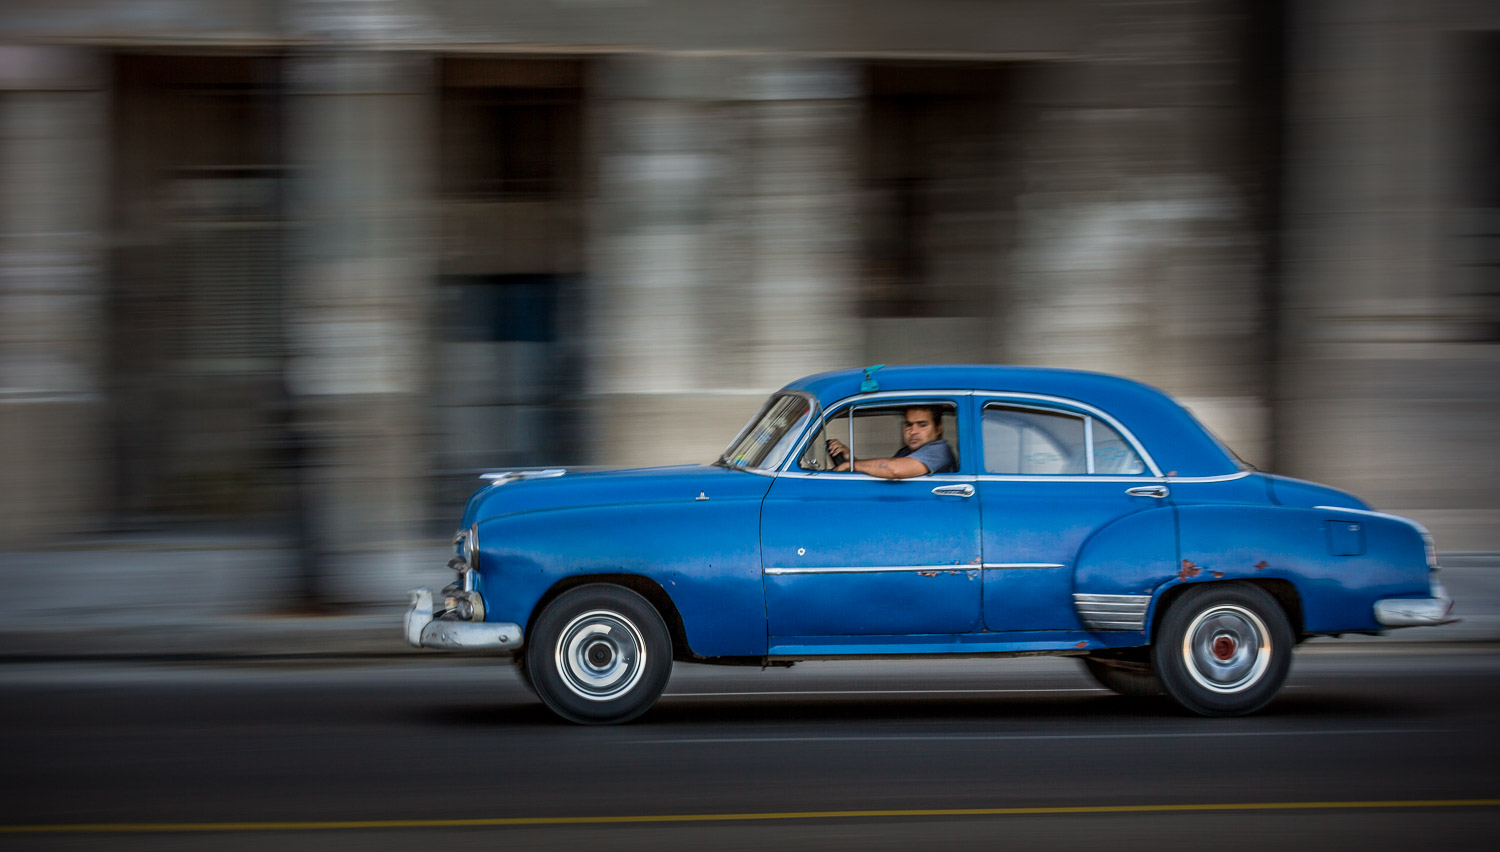 Image: Try panning for something different.